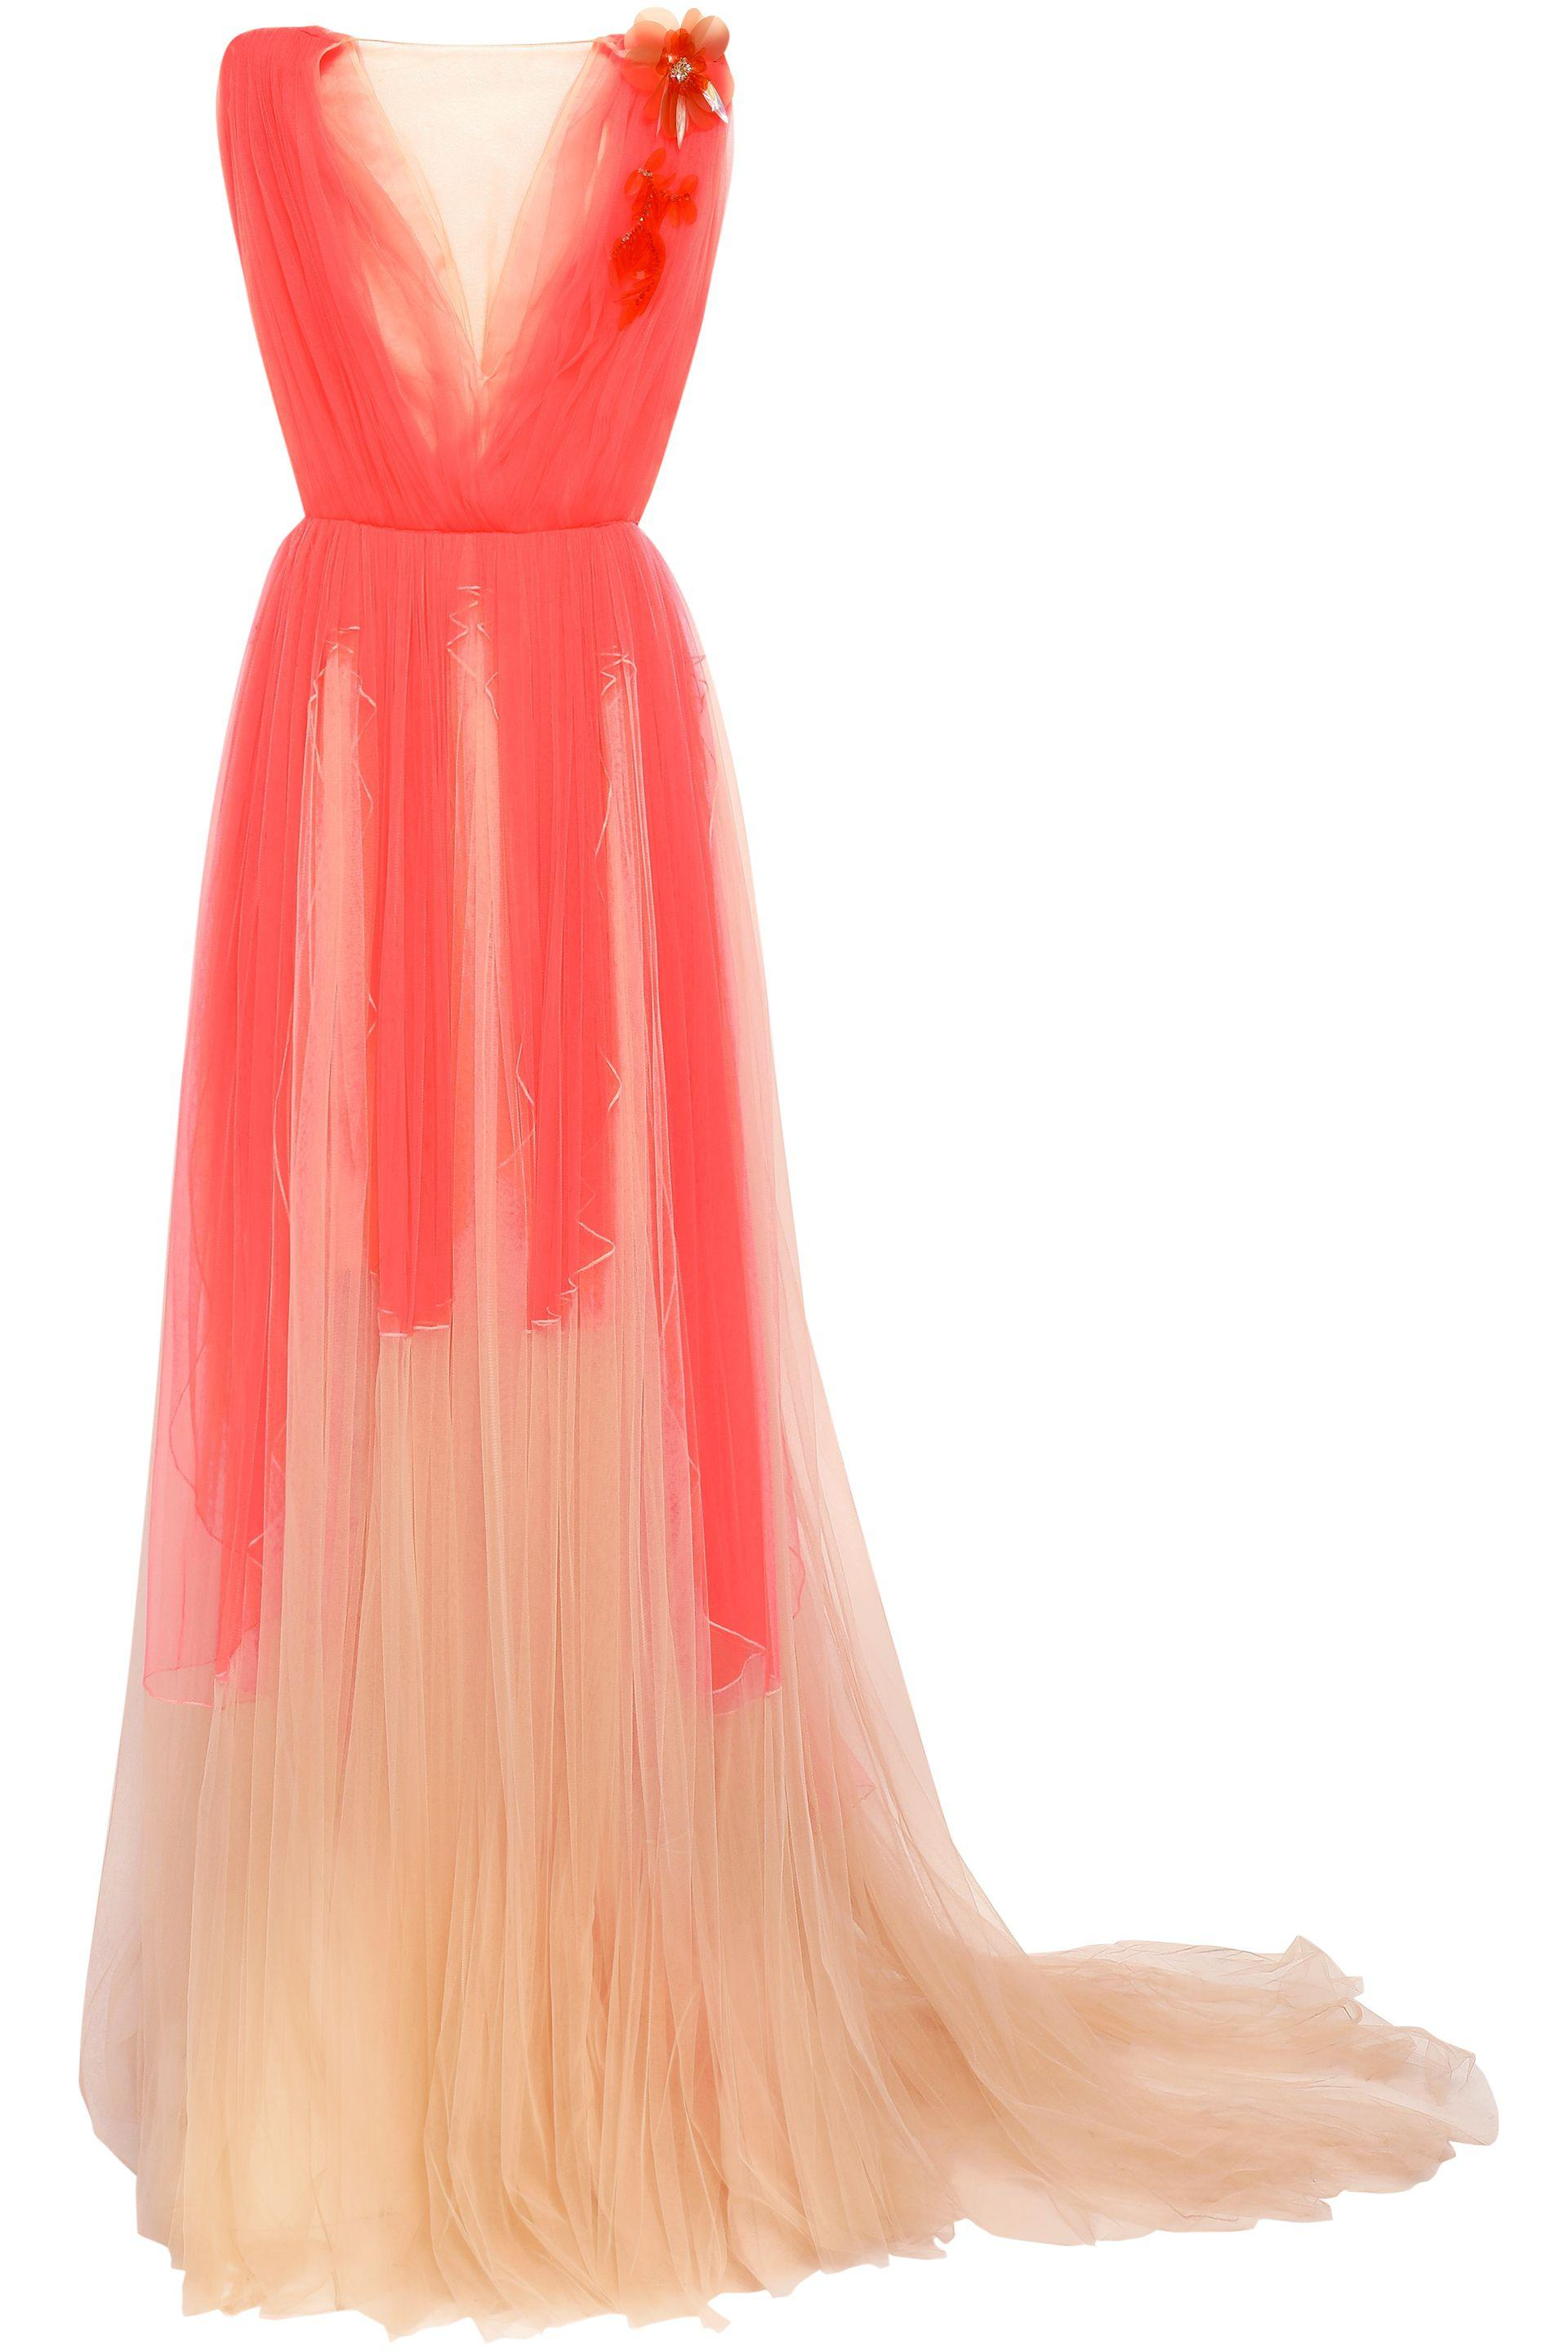 84fdf560a8a Lyst - Delpozo Woman Embellished Two-tone Tulle Gown Coral in Pink